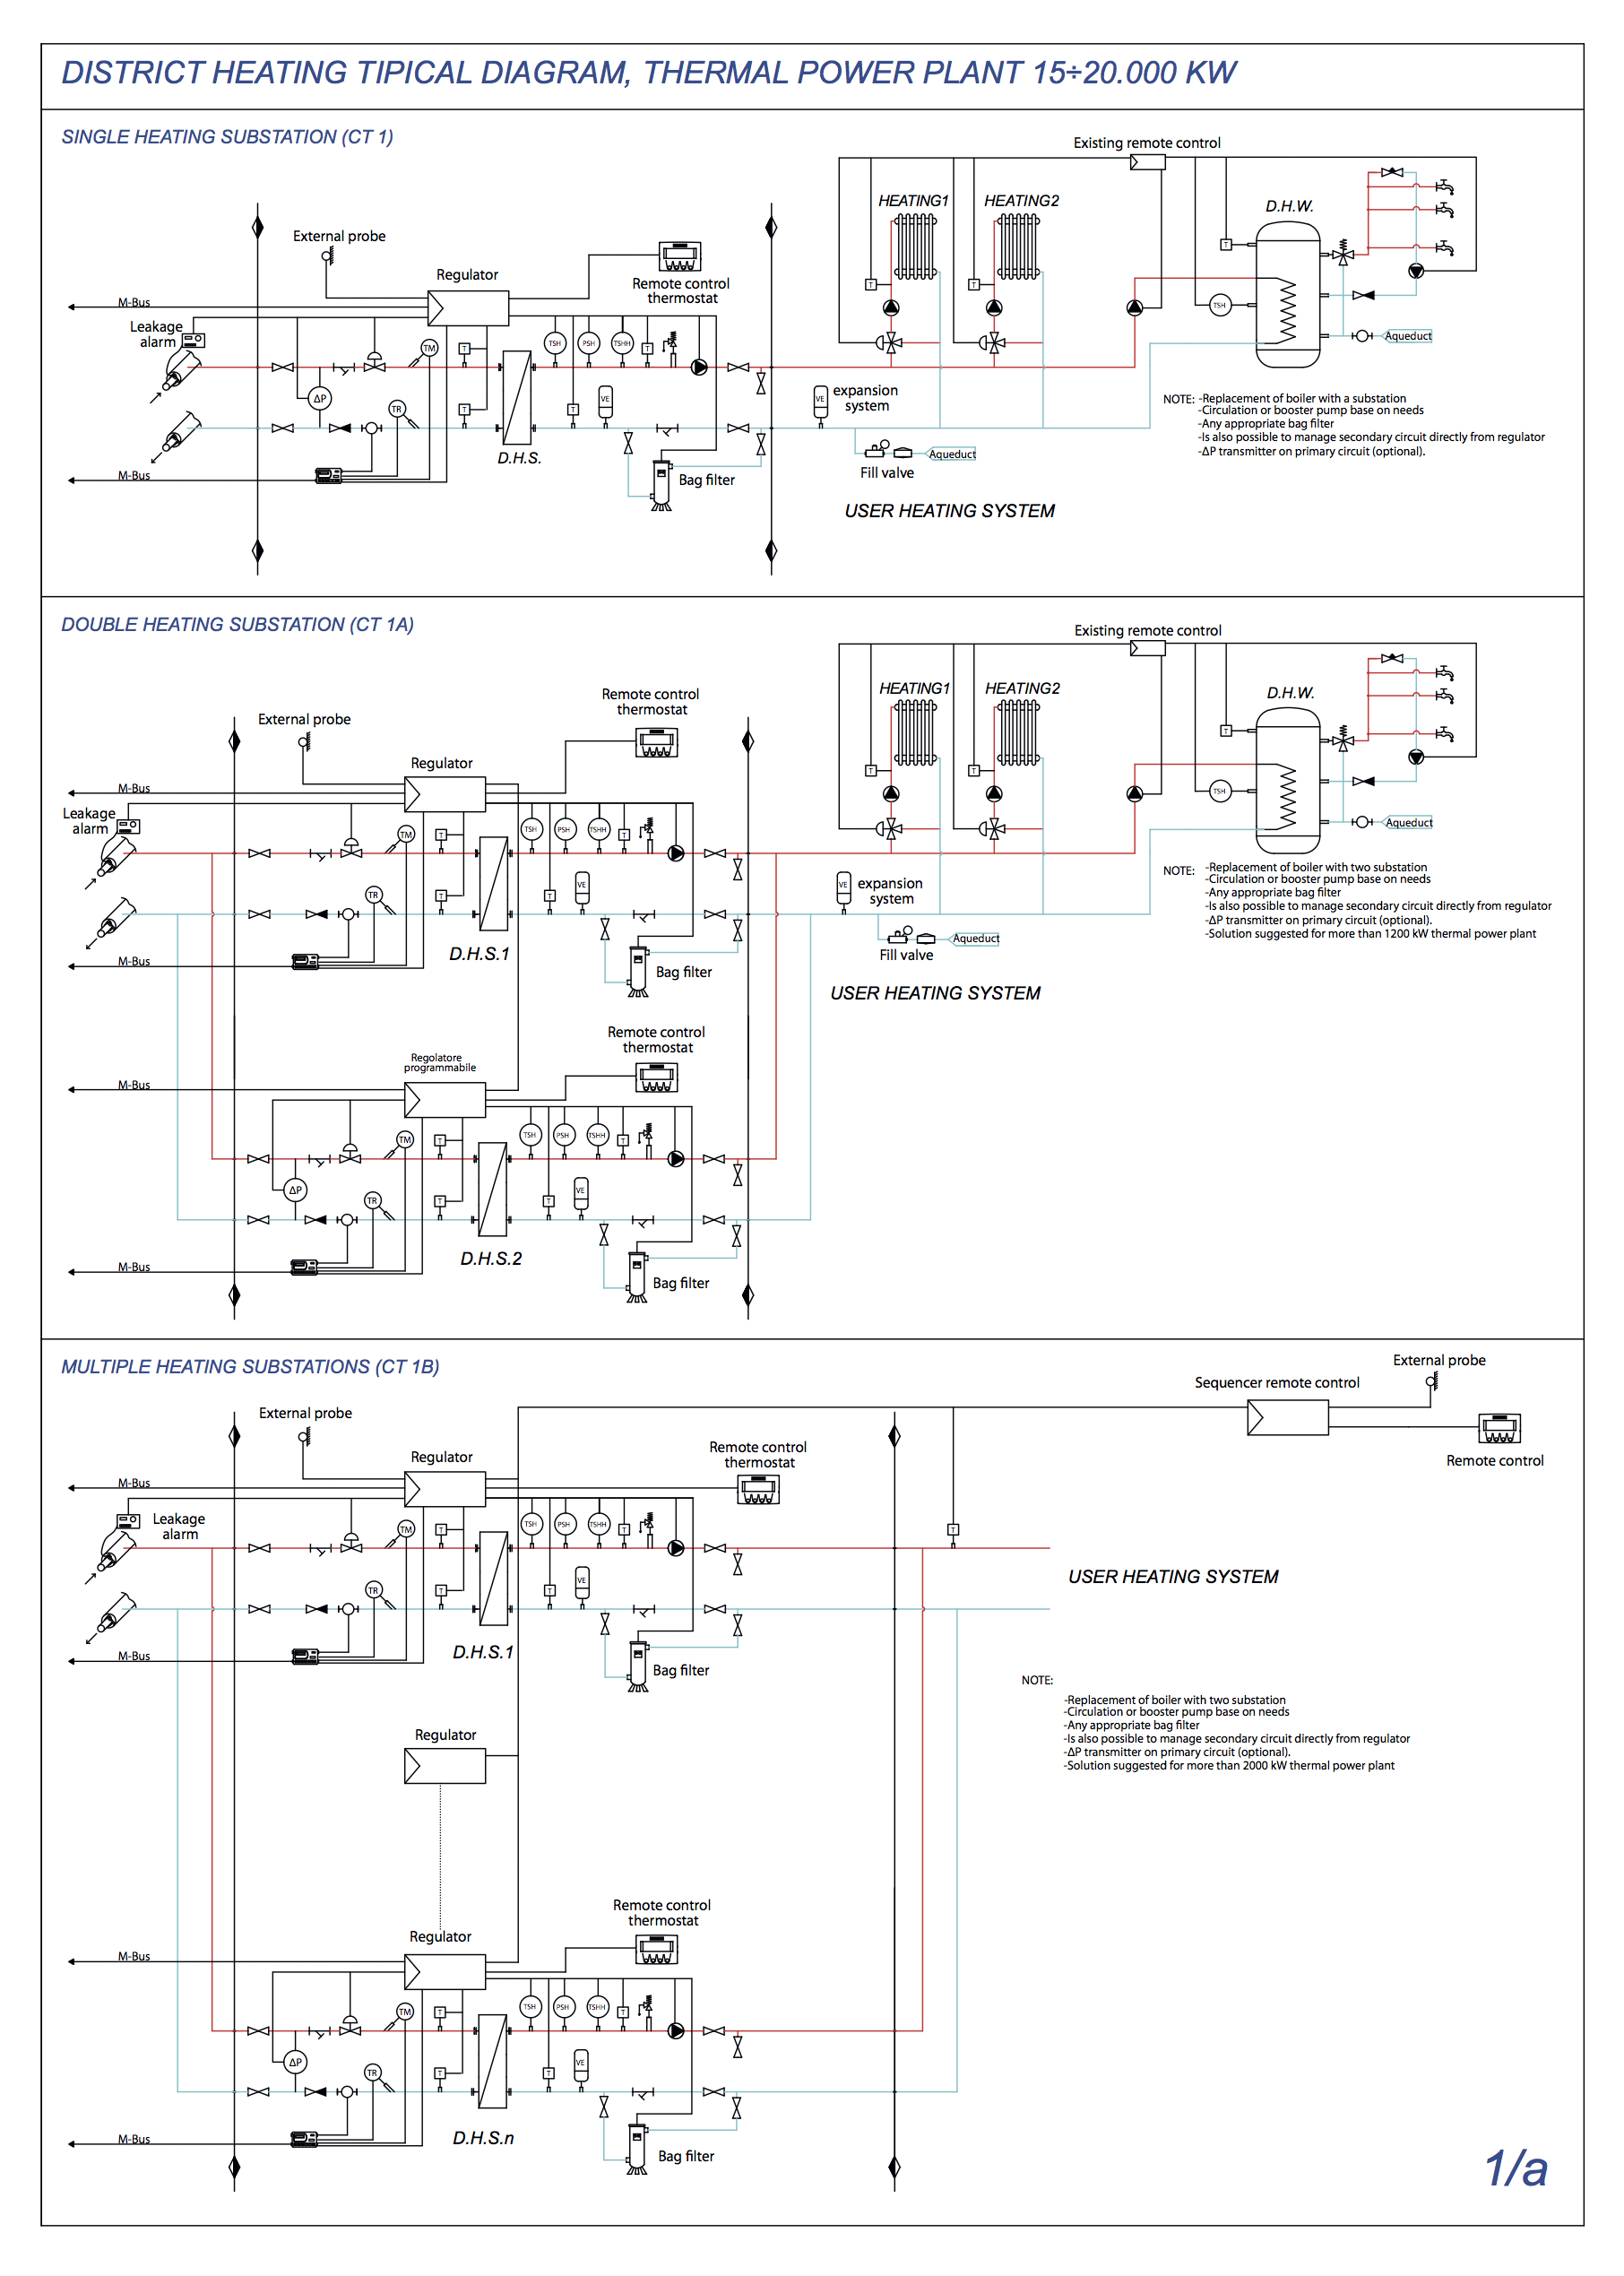 DISTRICT HEATING TIPICAL DIAGRAM, THERMAL POWER PLANT 15÷20.000 KW PT1